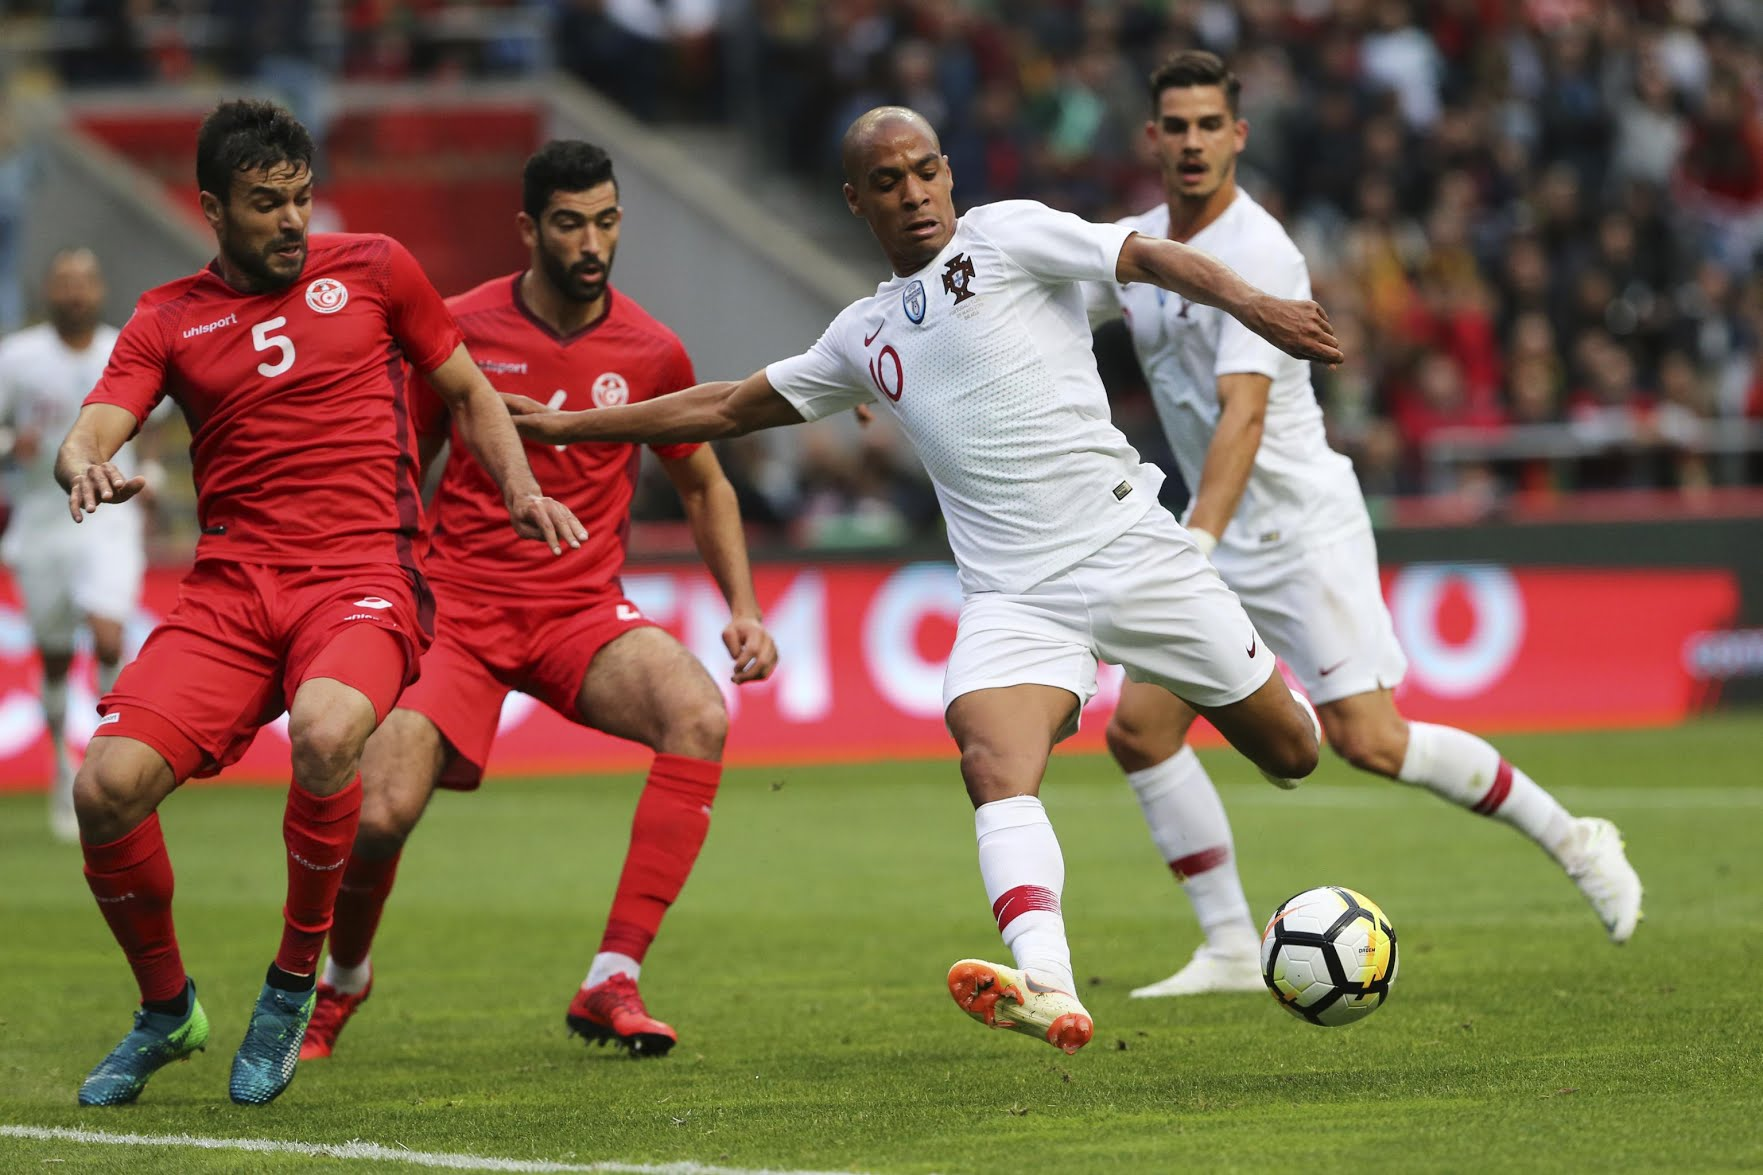 Int'l Friendlies: Tunisia Hold Portugal, Balotelli Scores In Italy Win, France Edge Ireland